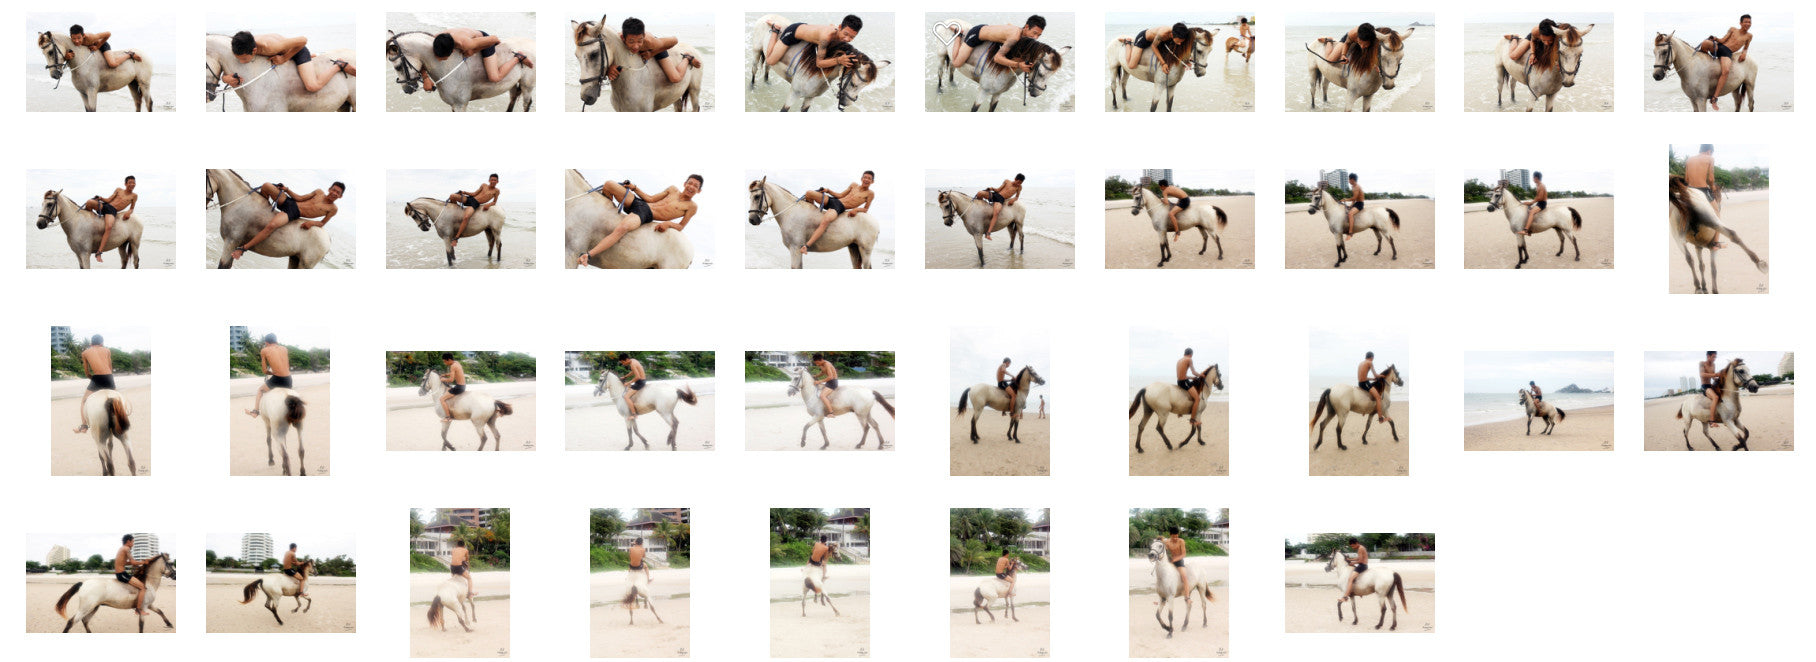 Thaksin in Black Spandex Riding Bareback on Buckskin Horse, Part 4 - Riding.Vision